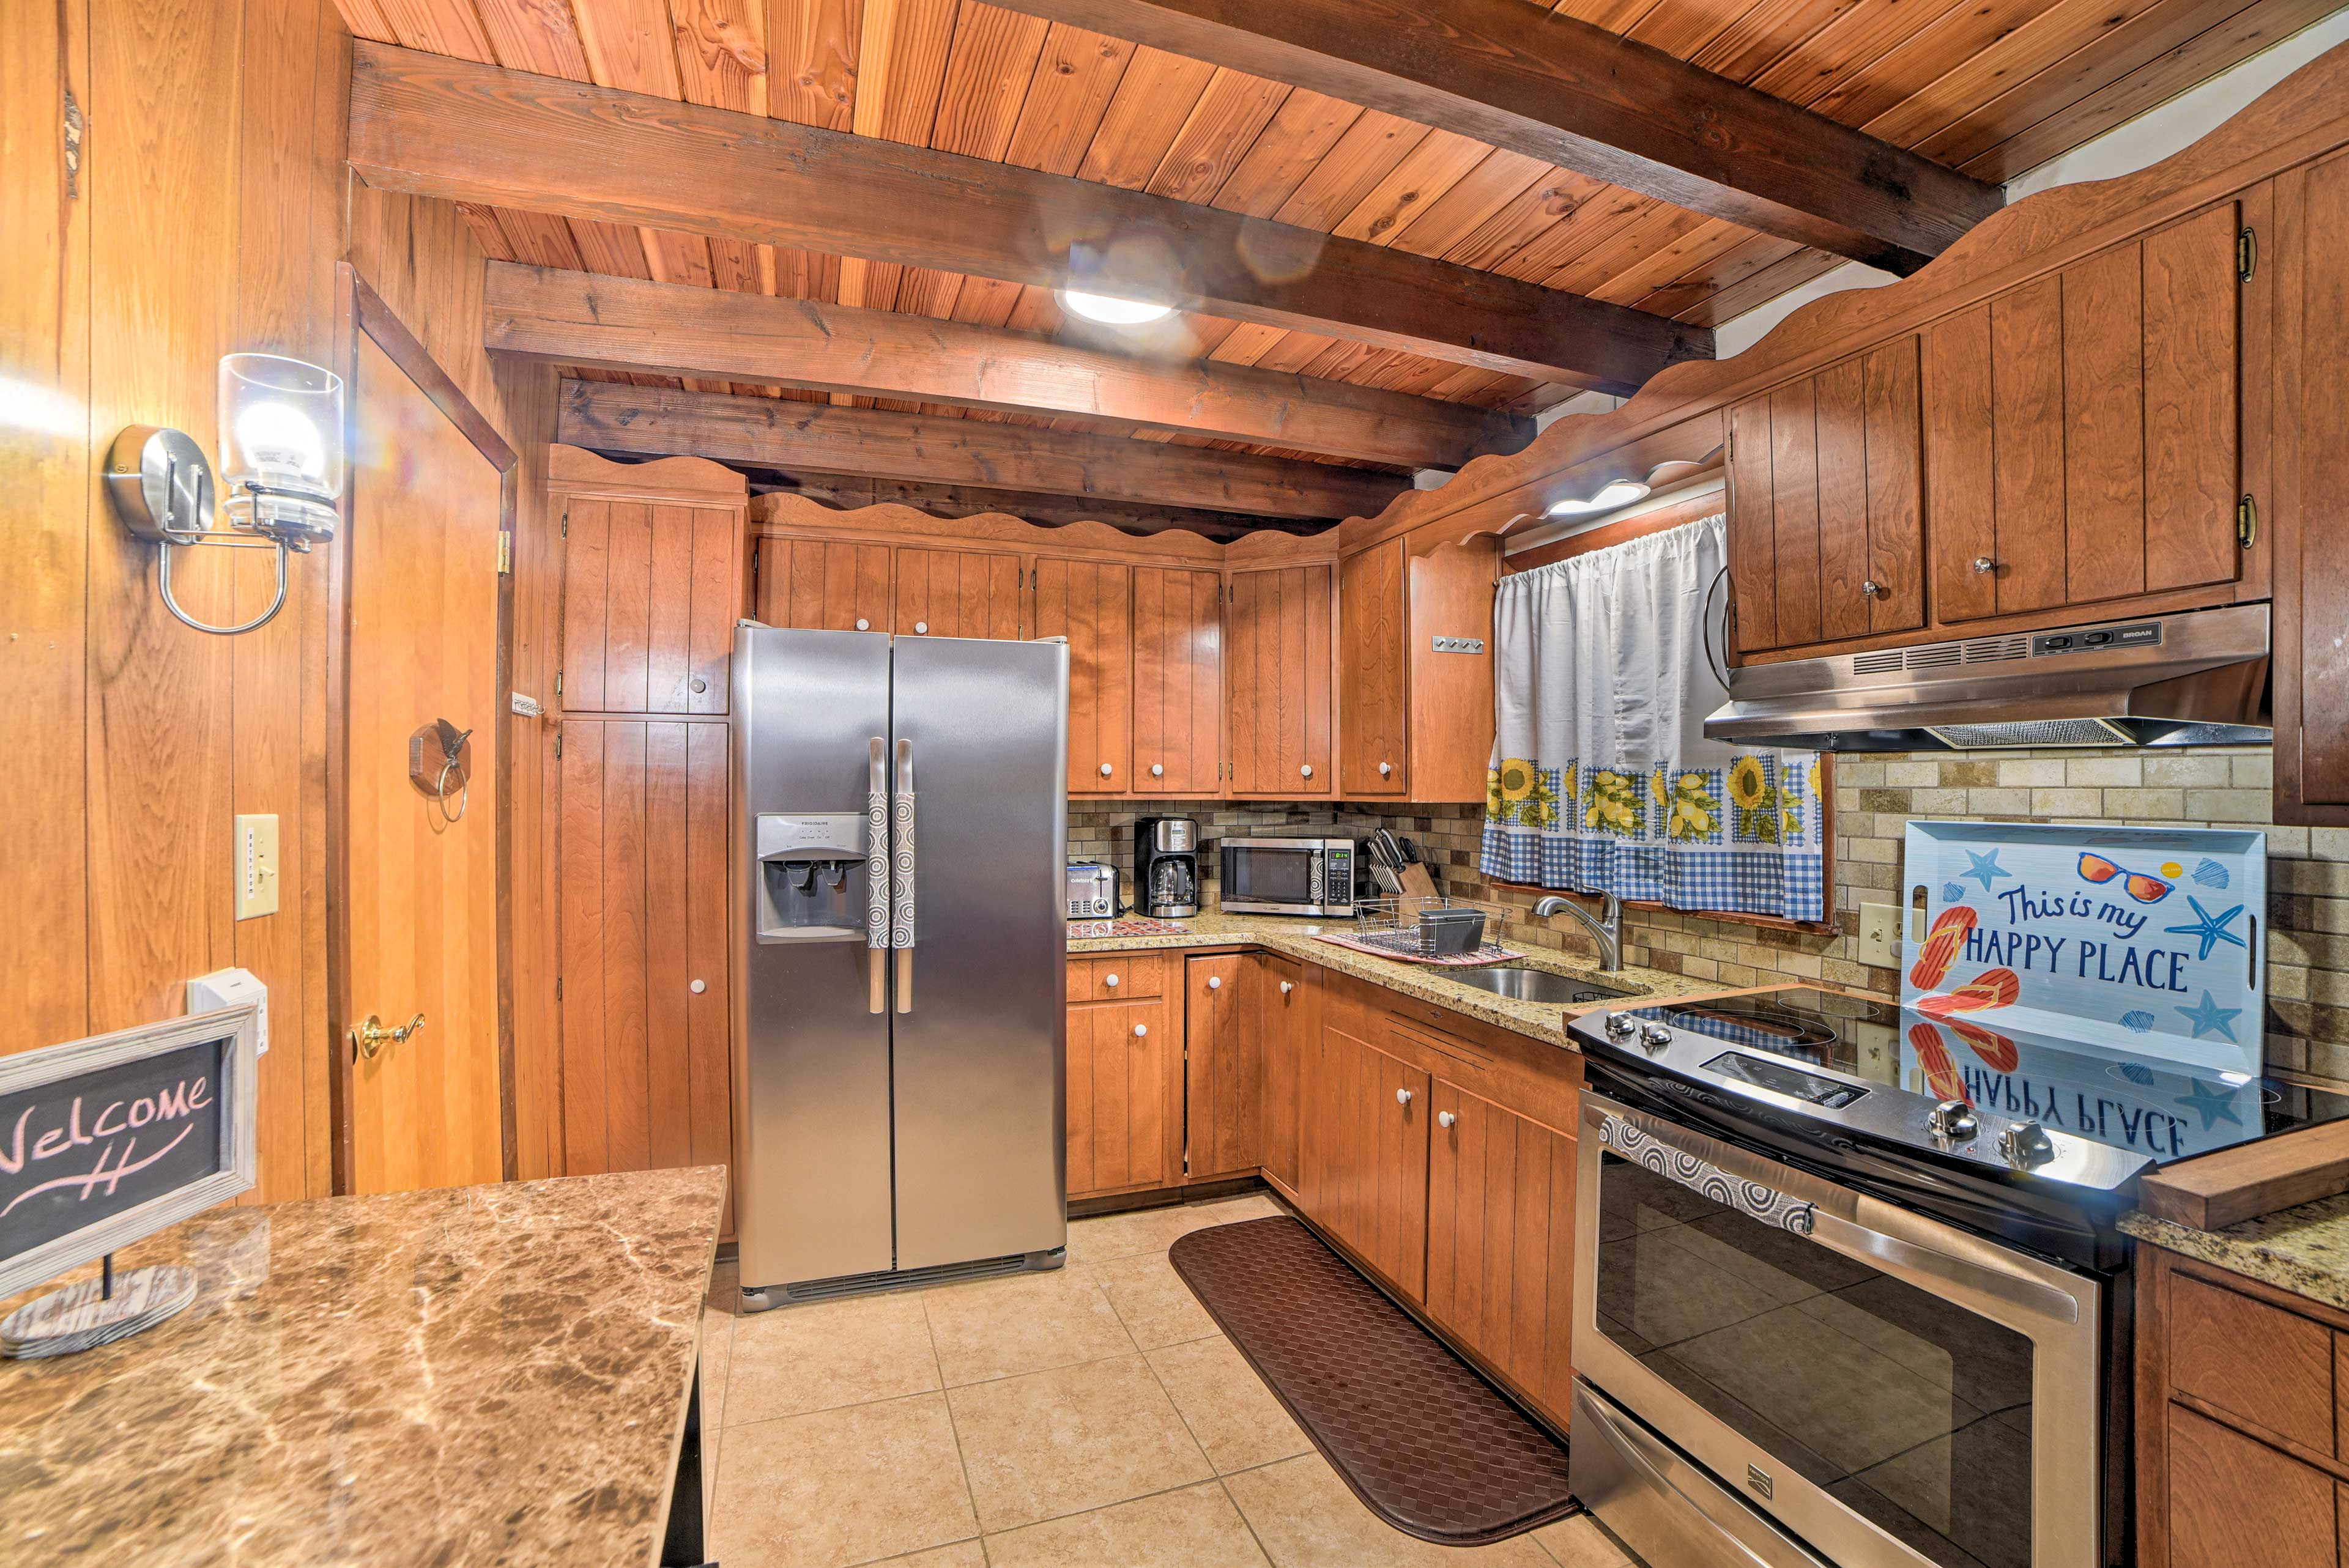 Make meals easily in this well-equipped kitchen.